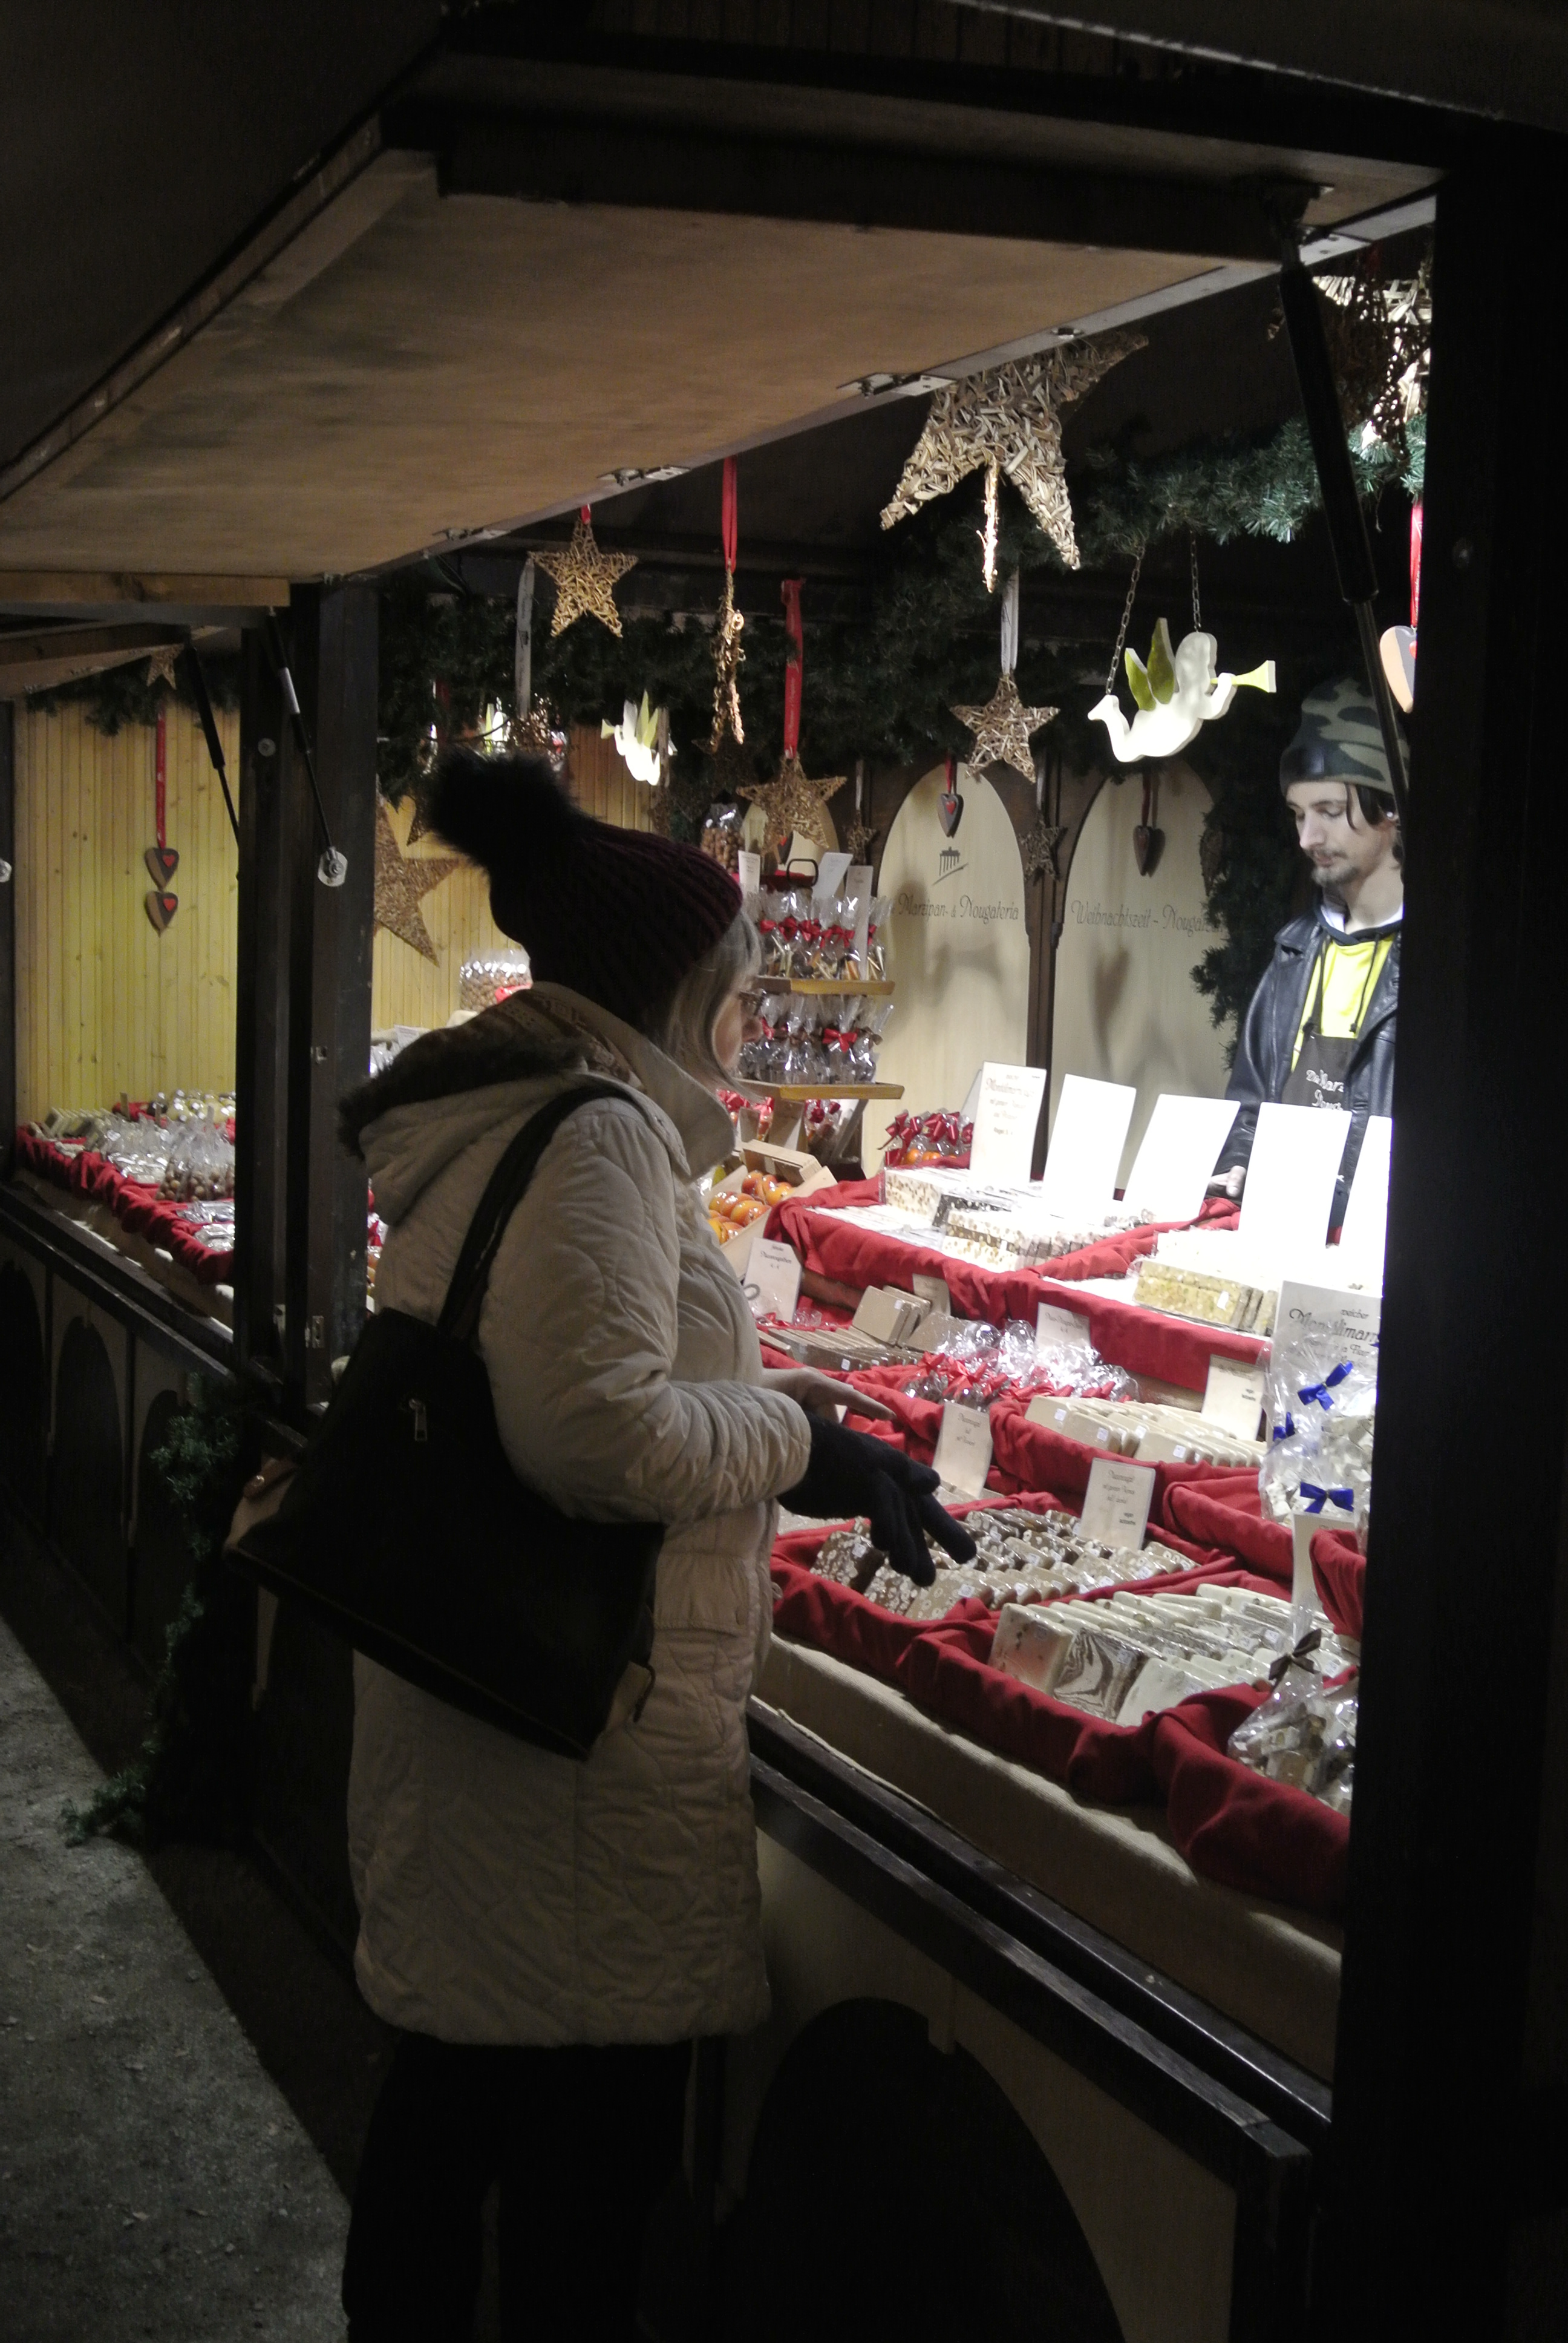 Buying sweets at a German Christmas Market - photo by Juliamaud